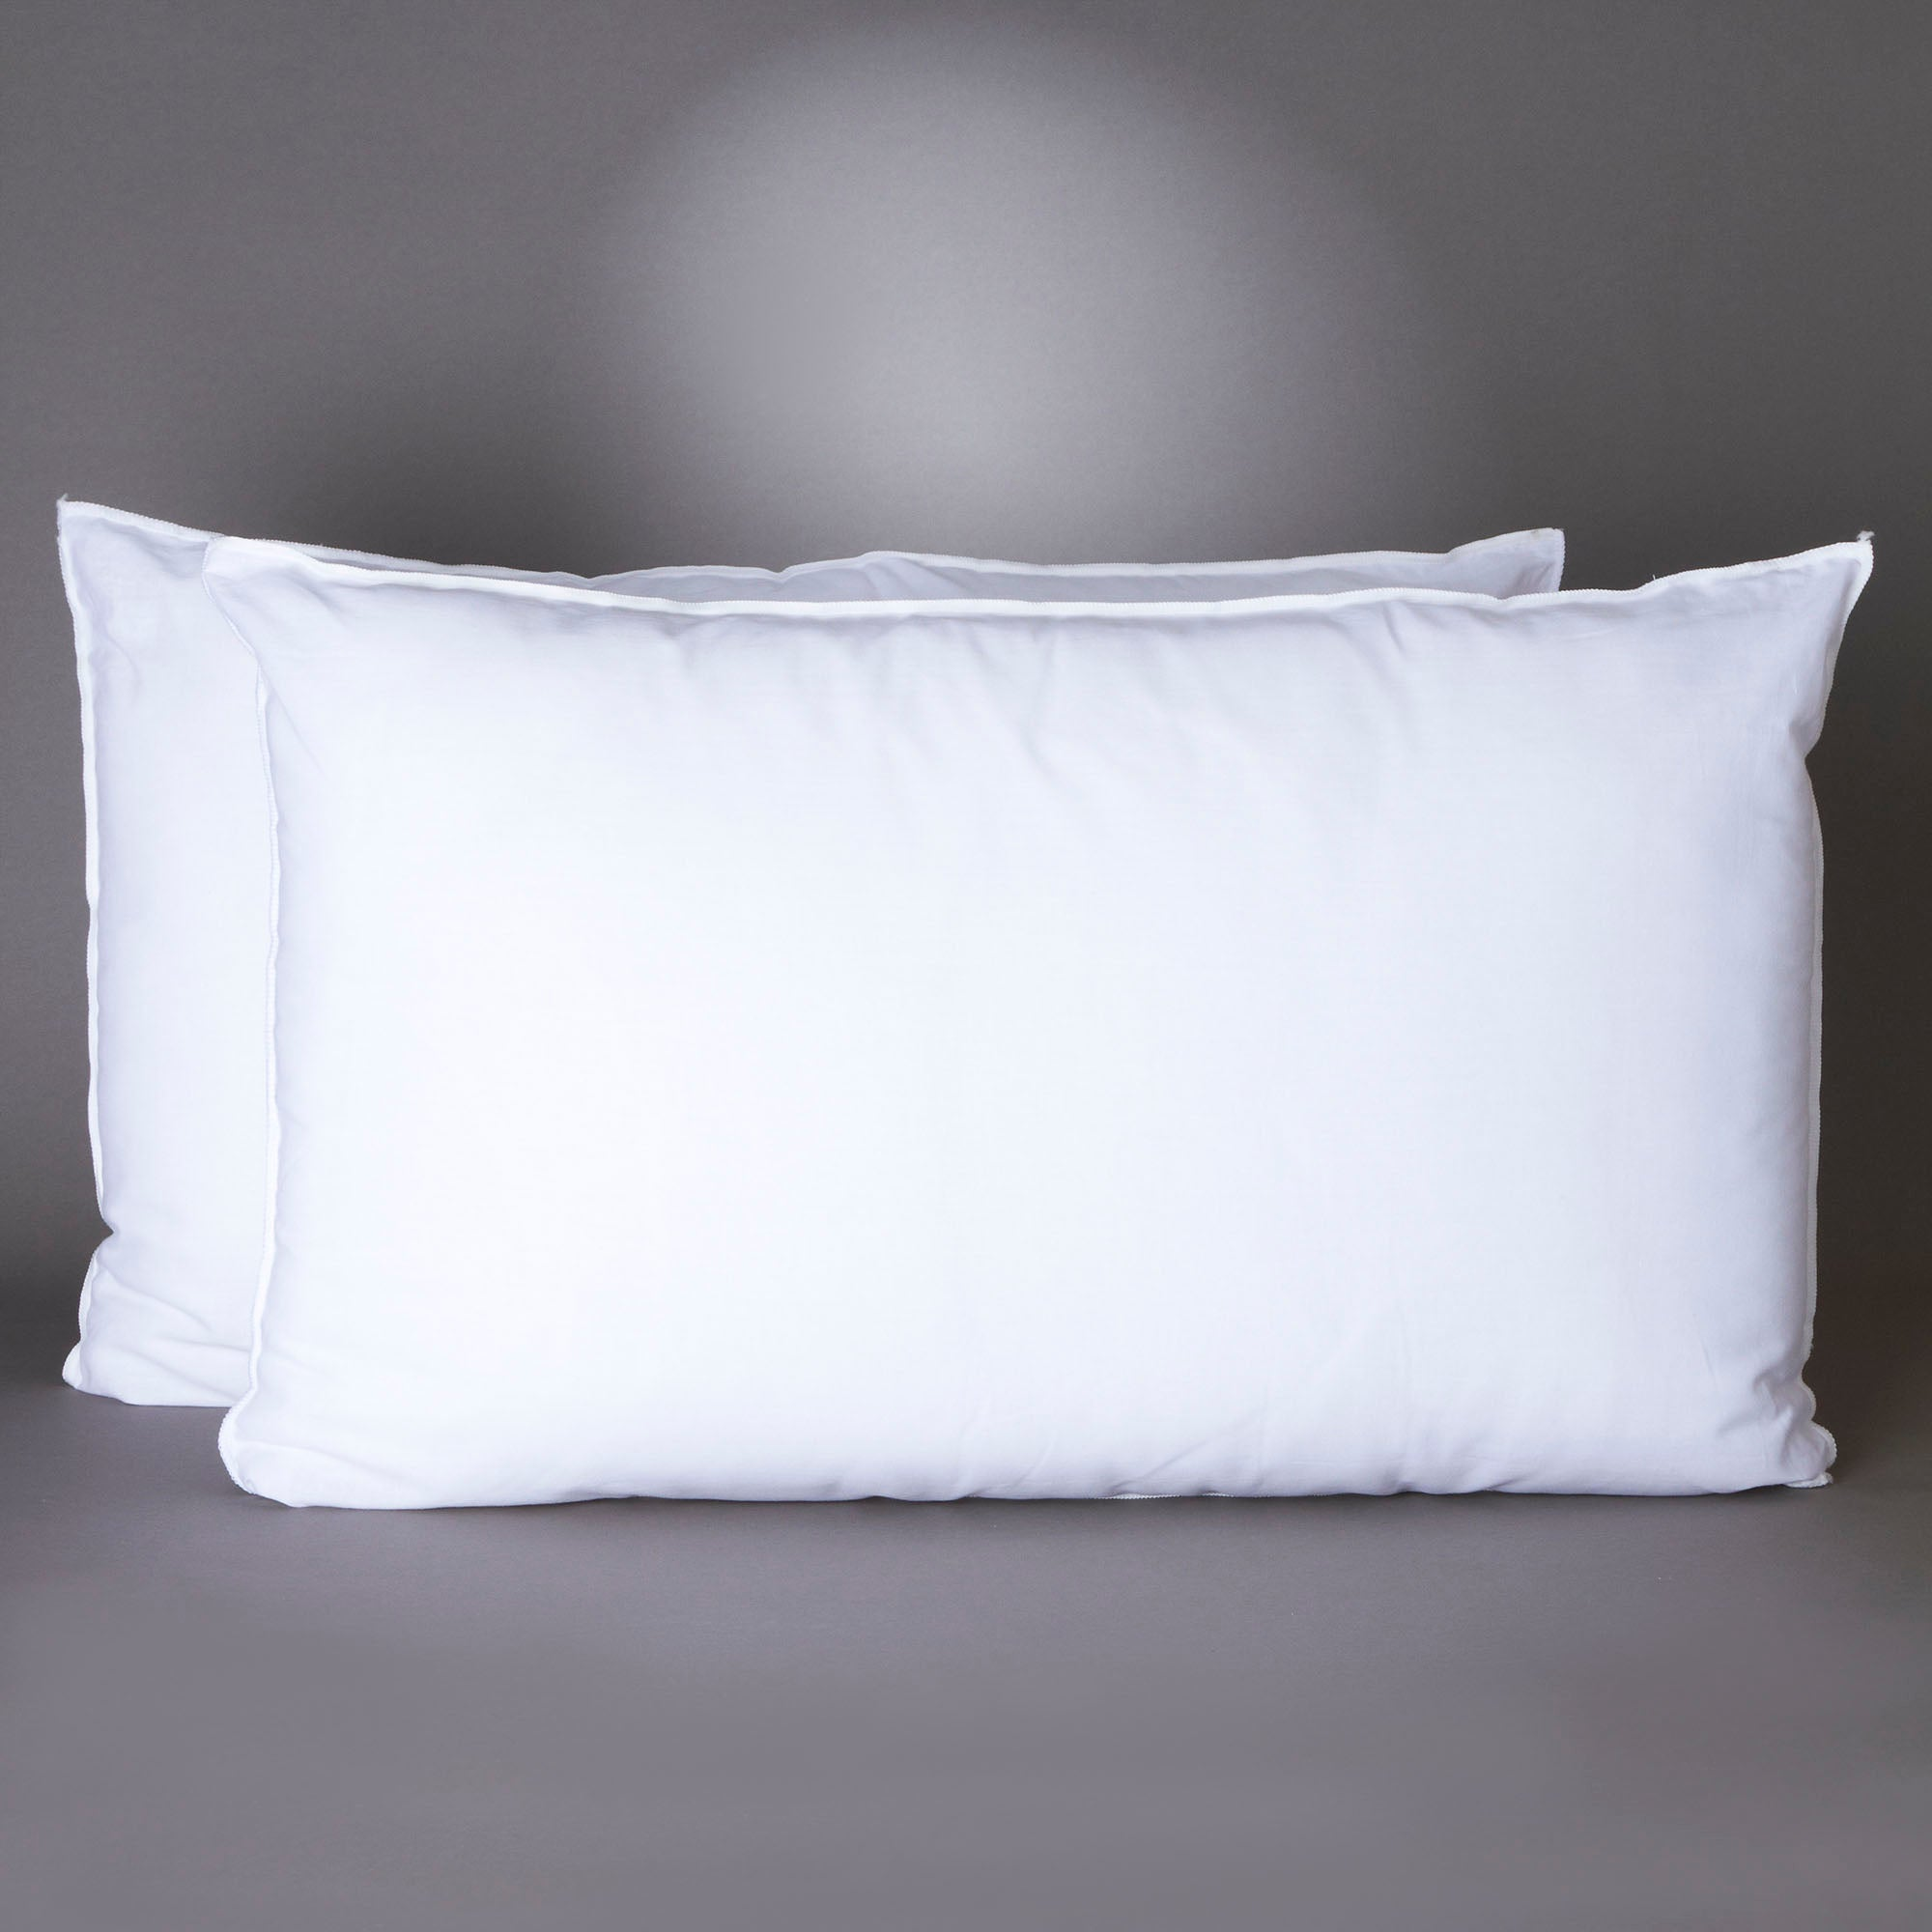 Temperature Regulating Pair of Pillows